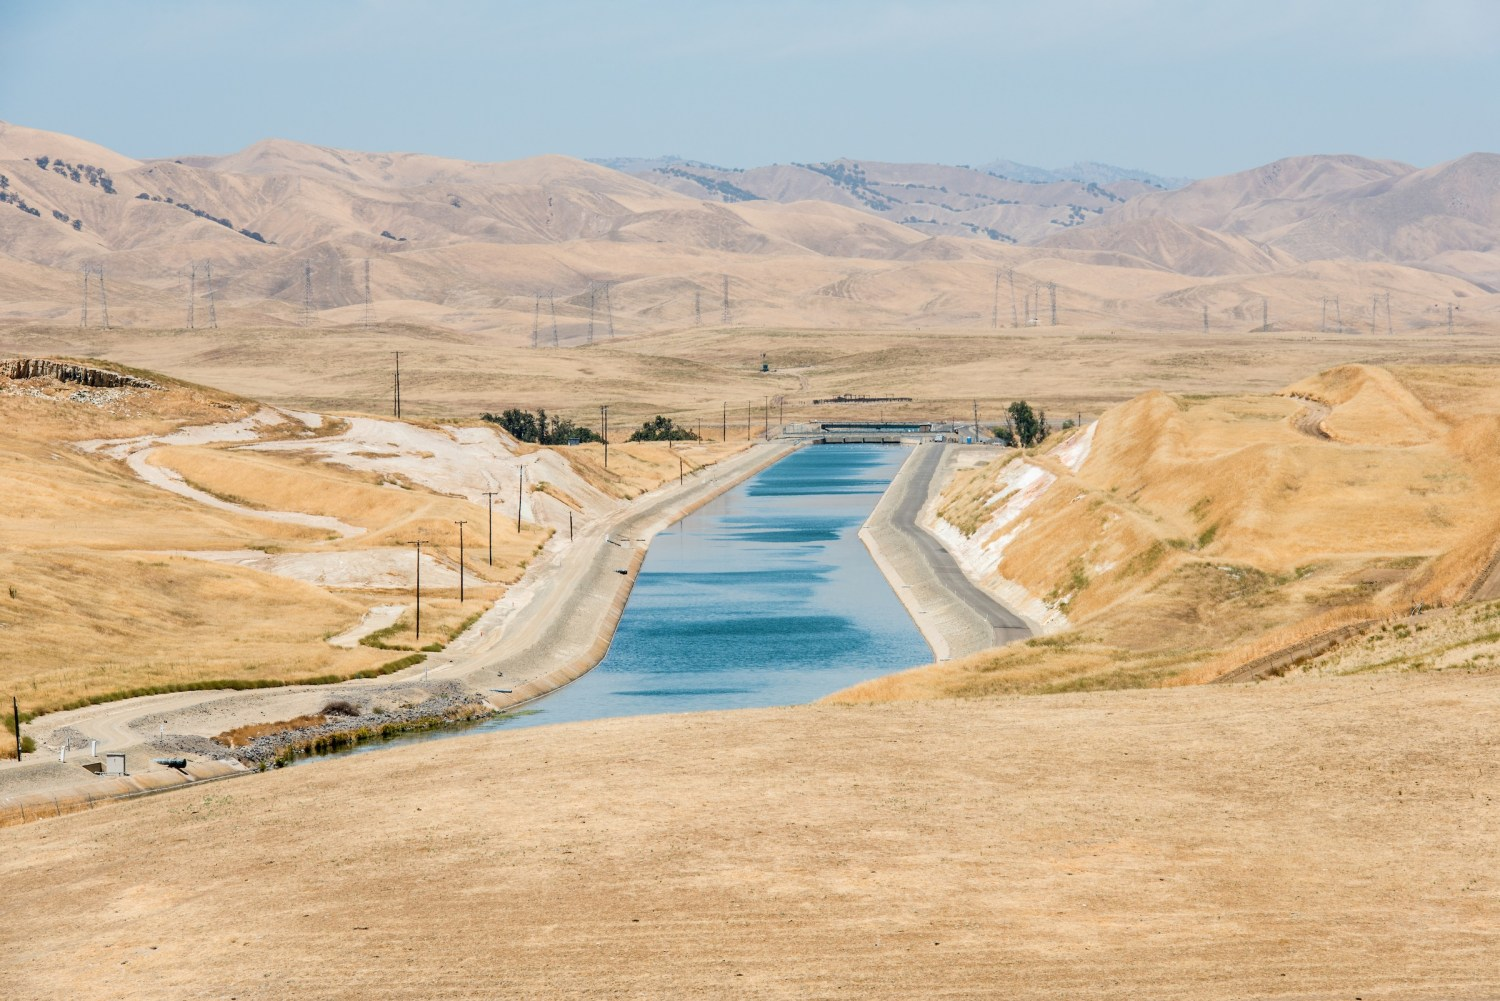 The California Aqueduct in Stanislaus County. Farms pumped so much groundwater during the state's recent drought that land around parts of the aqueduct sank, causing the canal to buckle. Photo courtesy of Florence Low / California Department of Water Resources